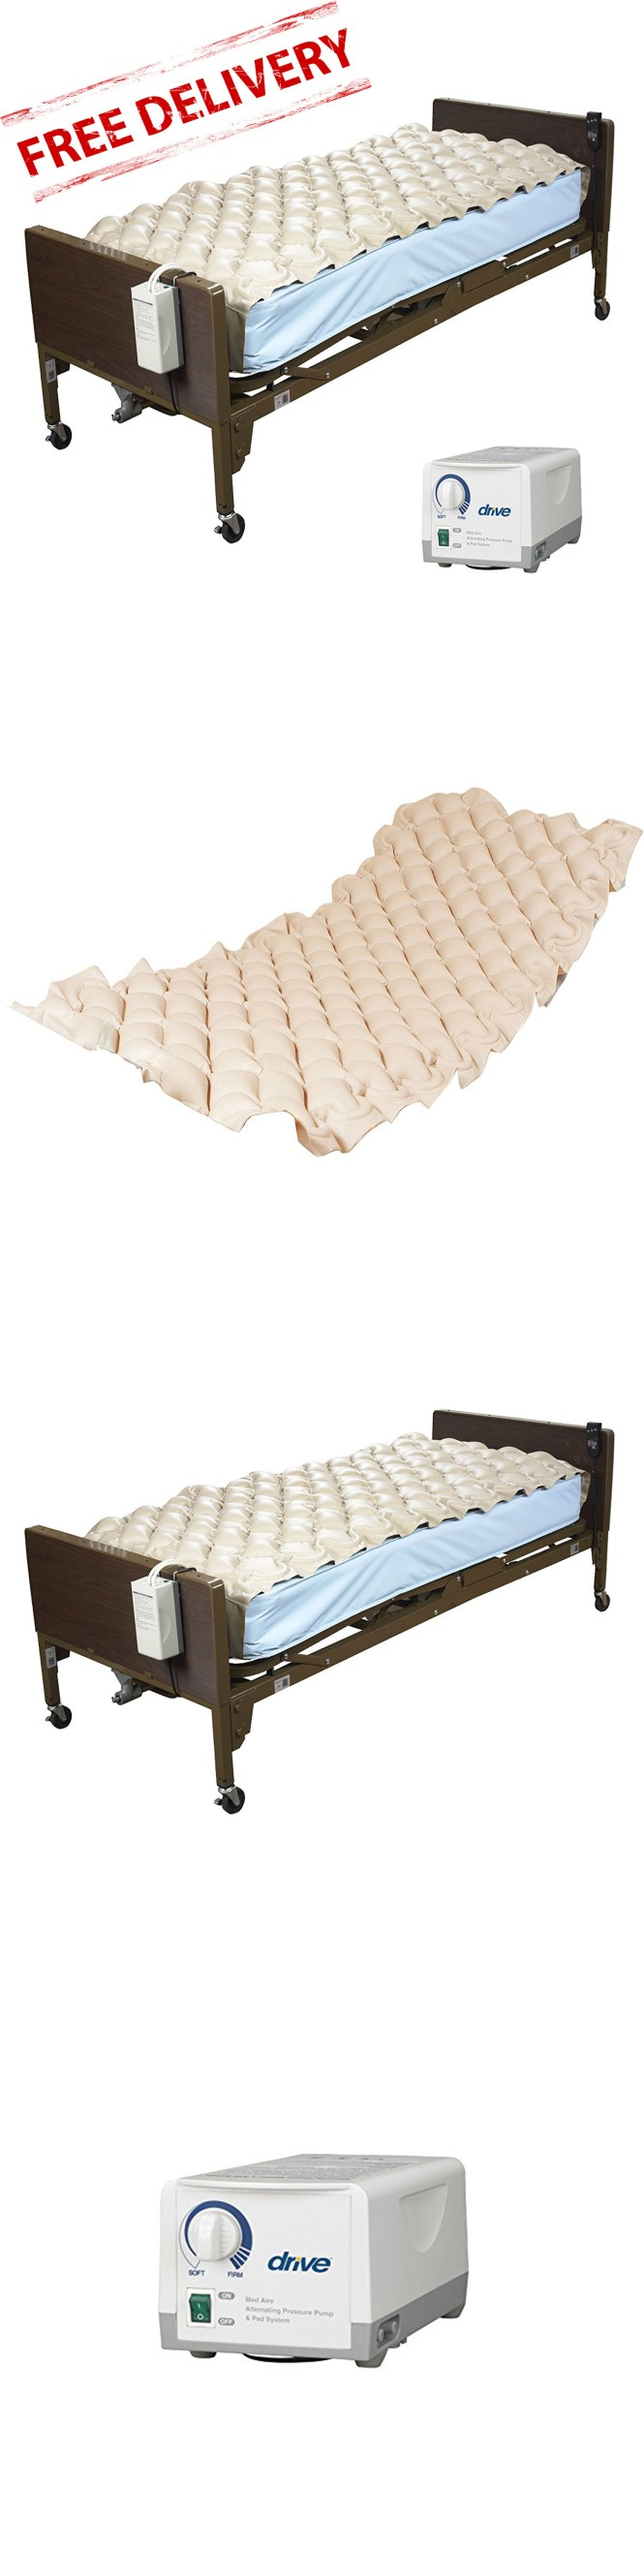 Other Orthopedic Products Medical Bed Med Aire Air Mattress Alternating Pressure Pump Pad Hospital System